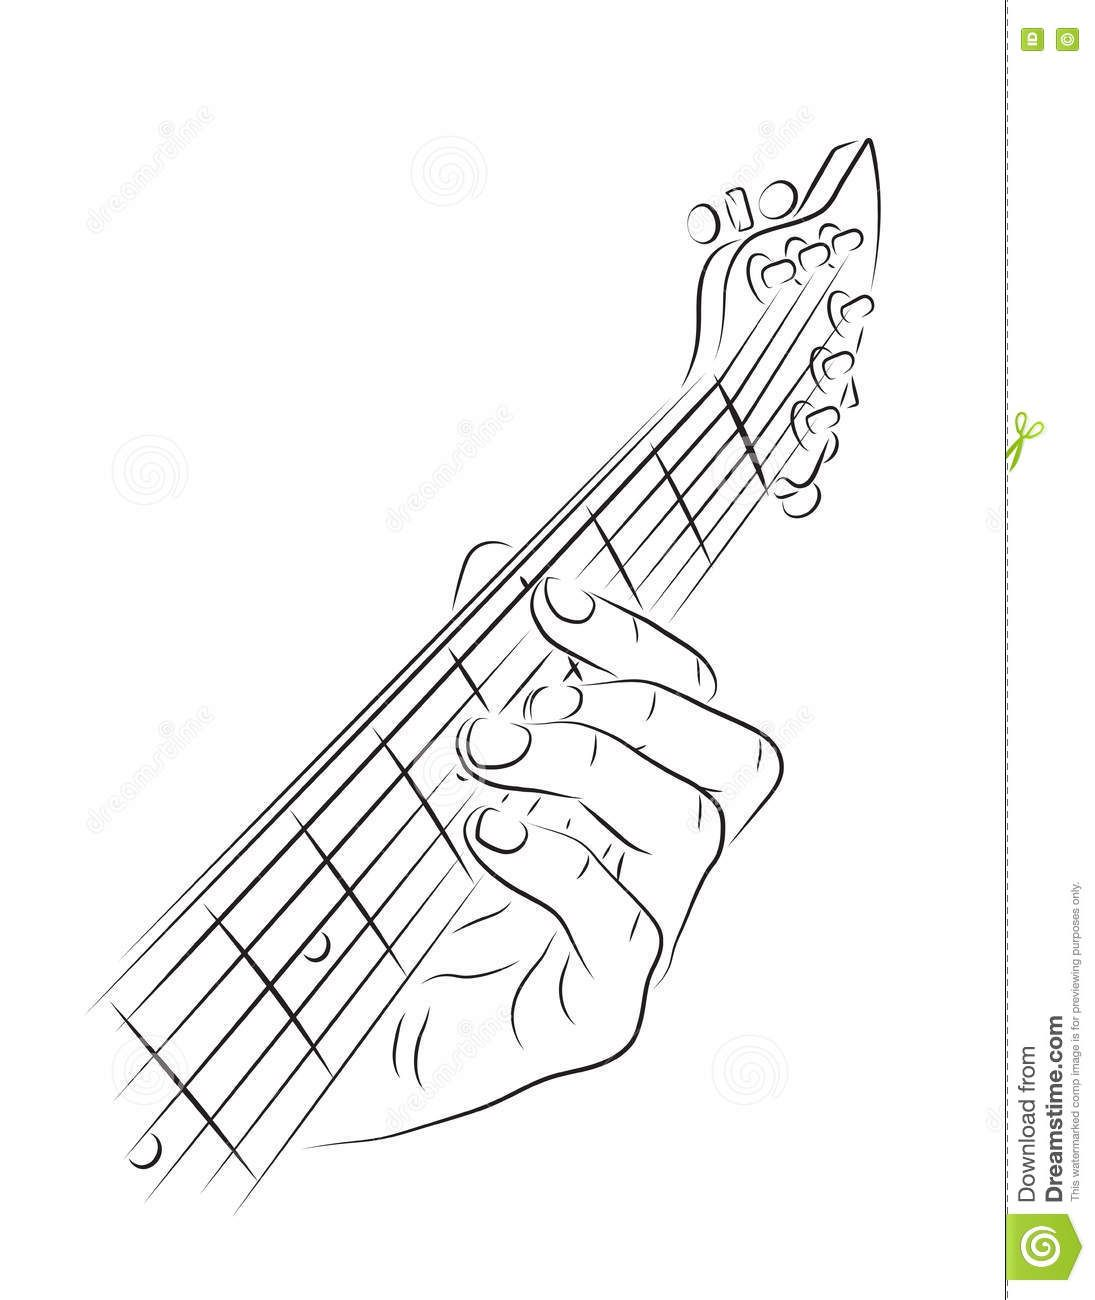 Image result for line drawings of guitar chords guitar chordsline drawingswireoutline